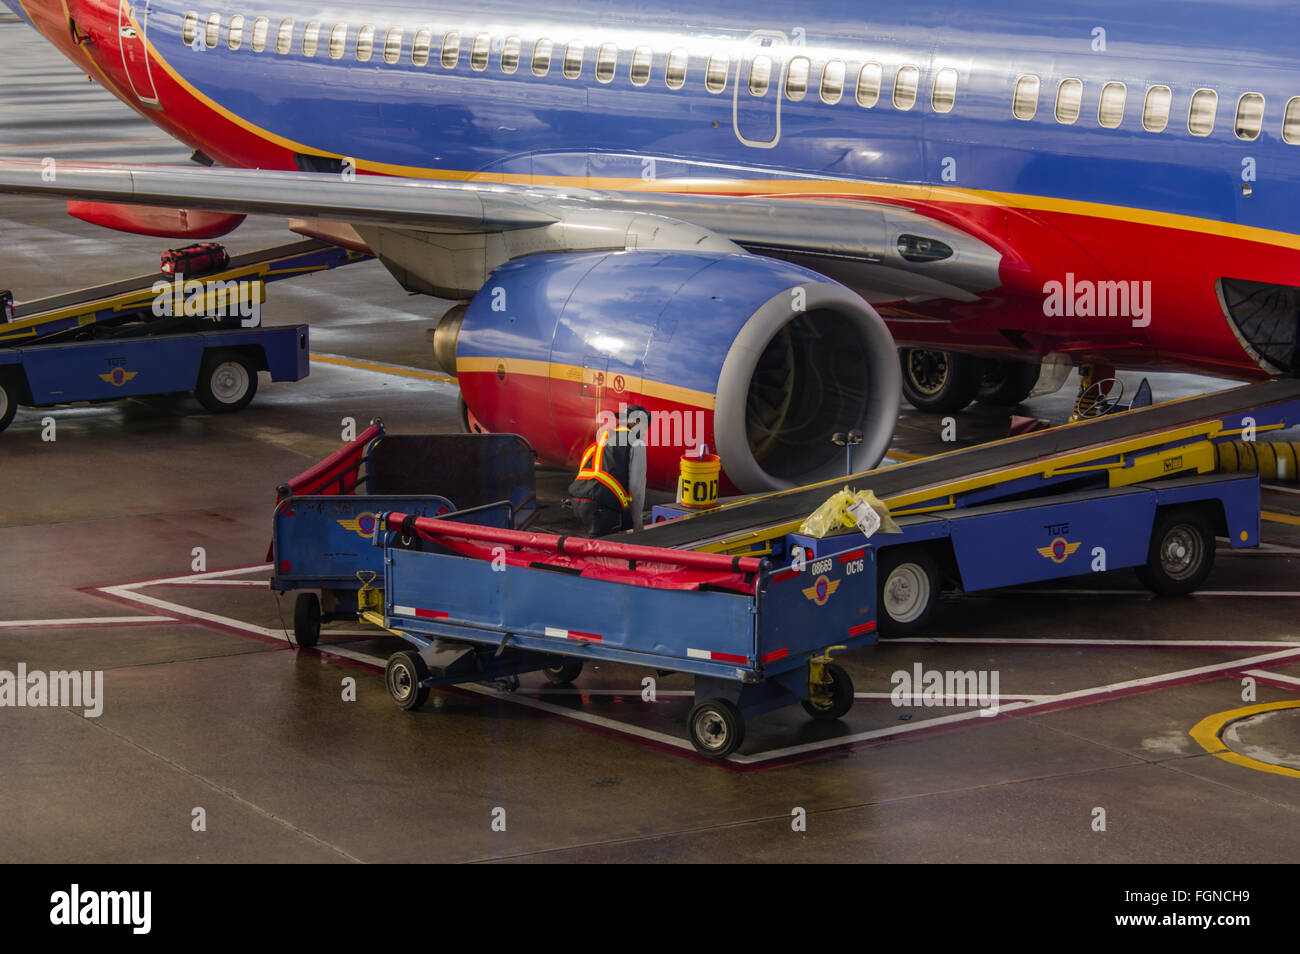 Baggage handler loads luggage aboard a Southwest Airlines flight - Stock Image